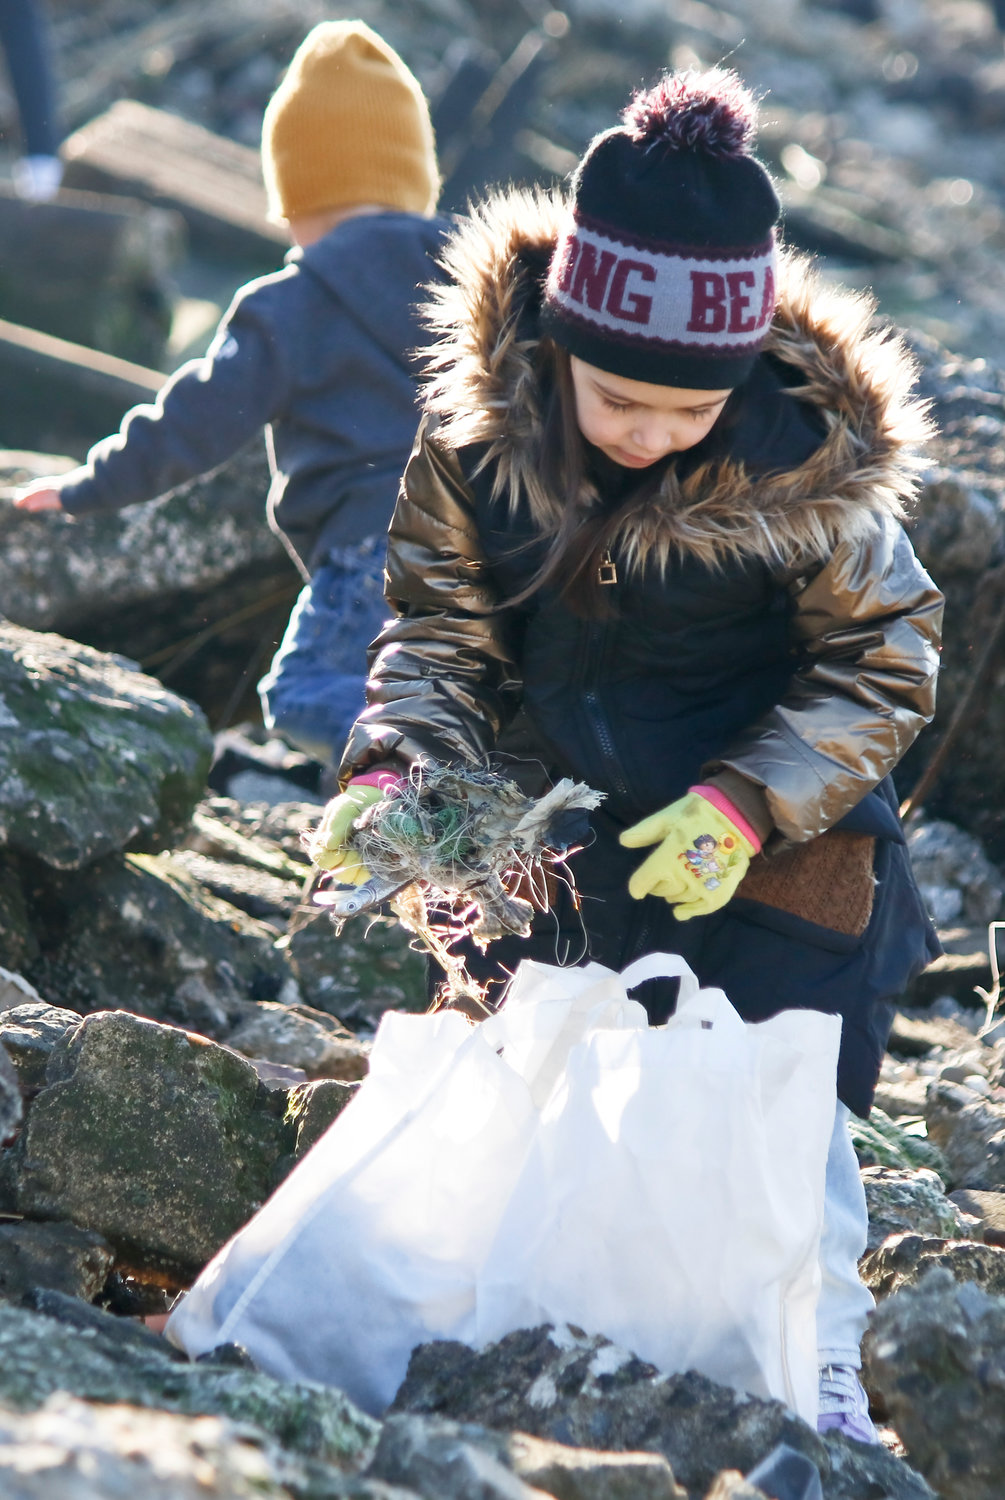 Cailin Roach, 5, volunteered with Surfrider for the first time.